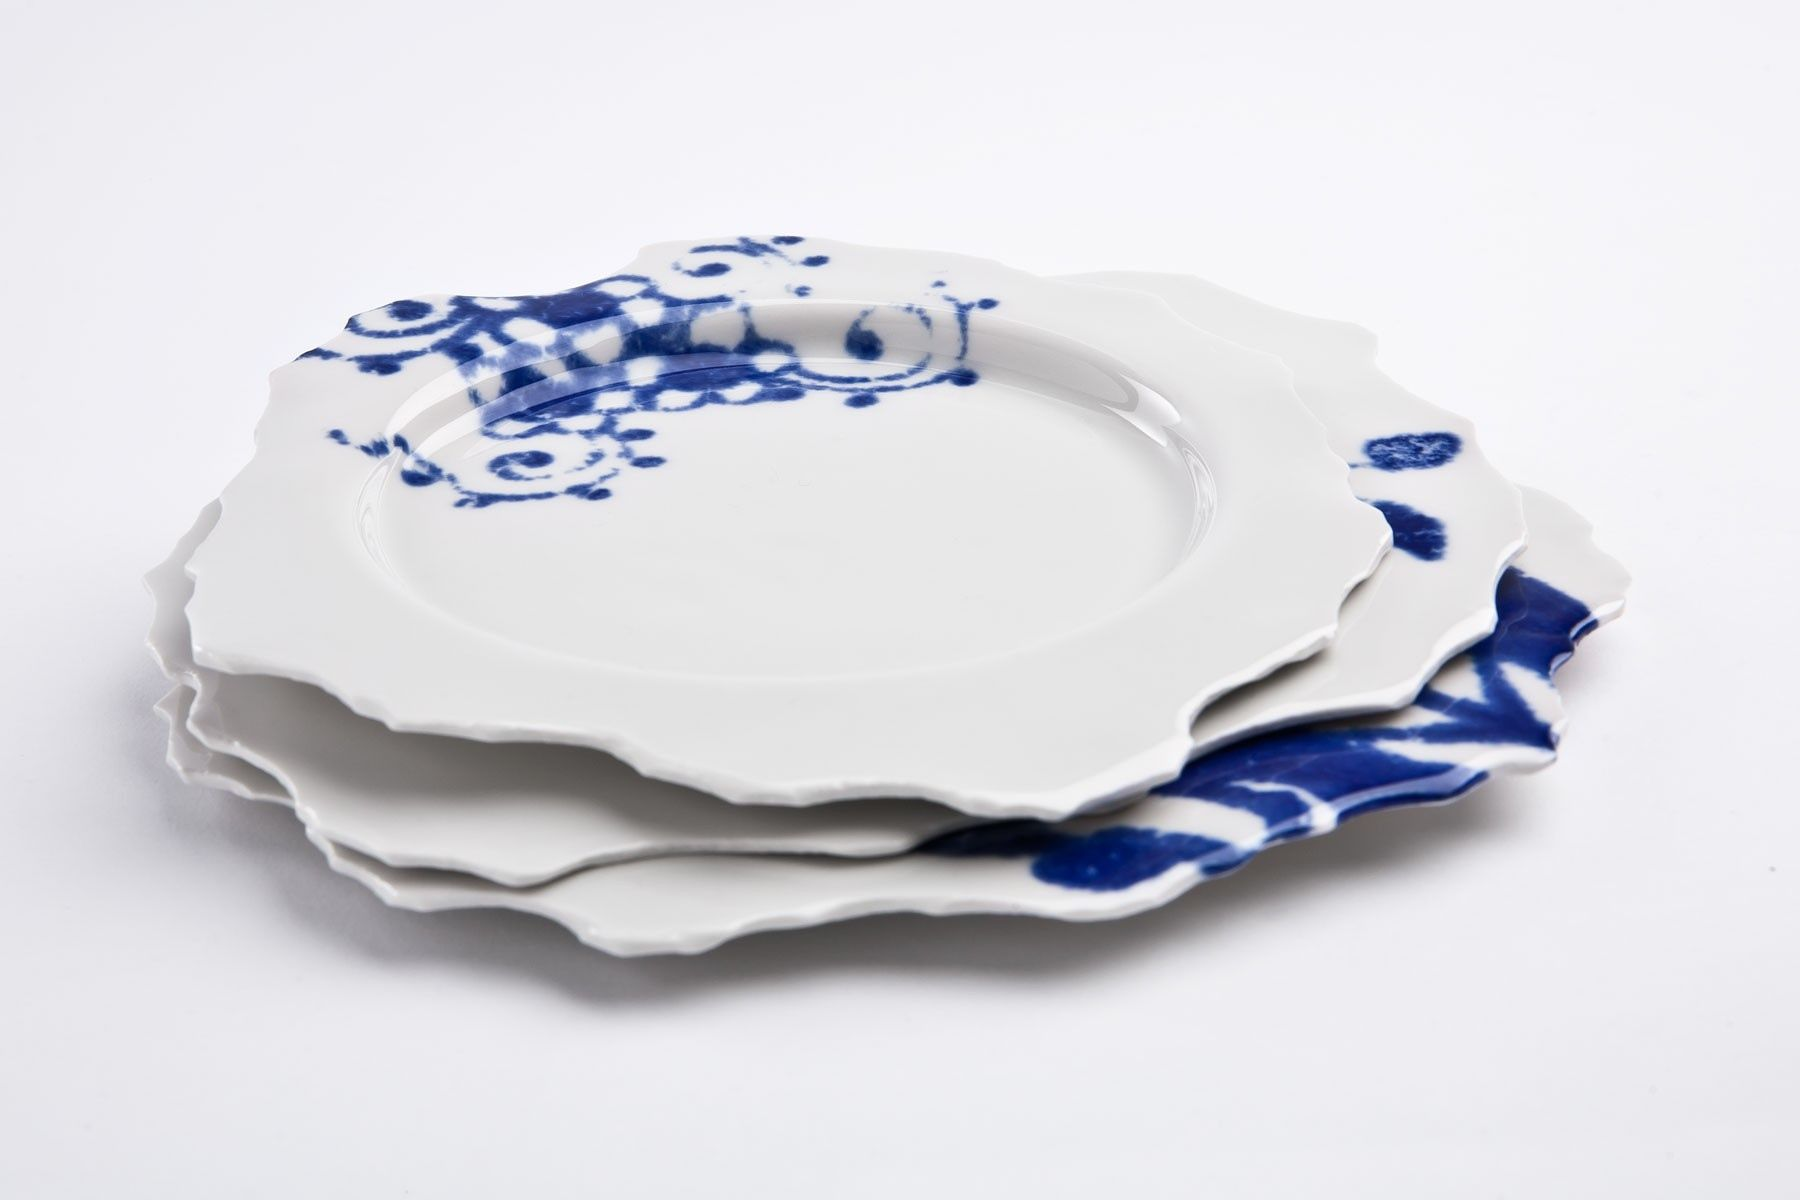 """Plate S """"Perfect Imperfect"""" - Plates & Bowls - Content & Container by Pia Pasalk"""